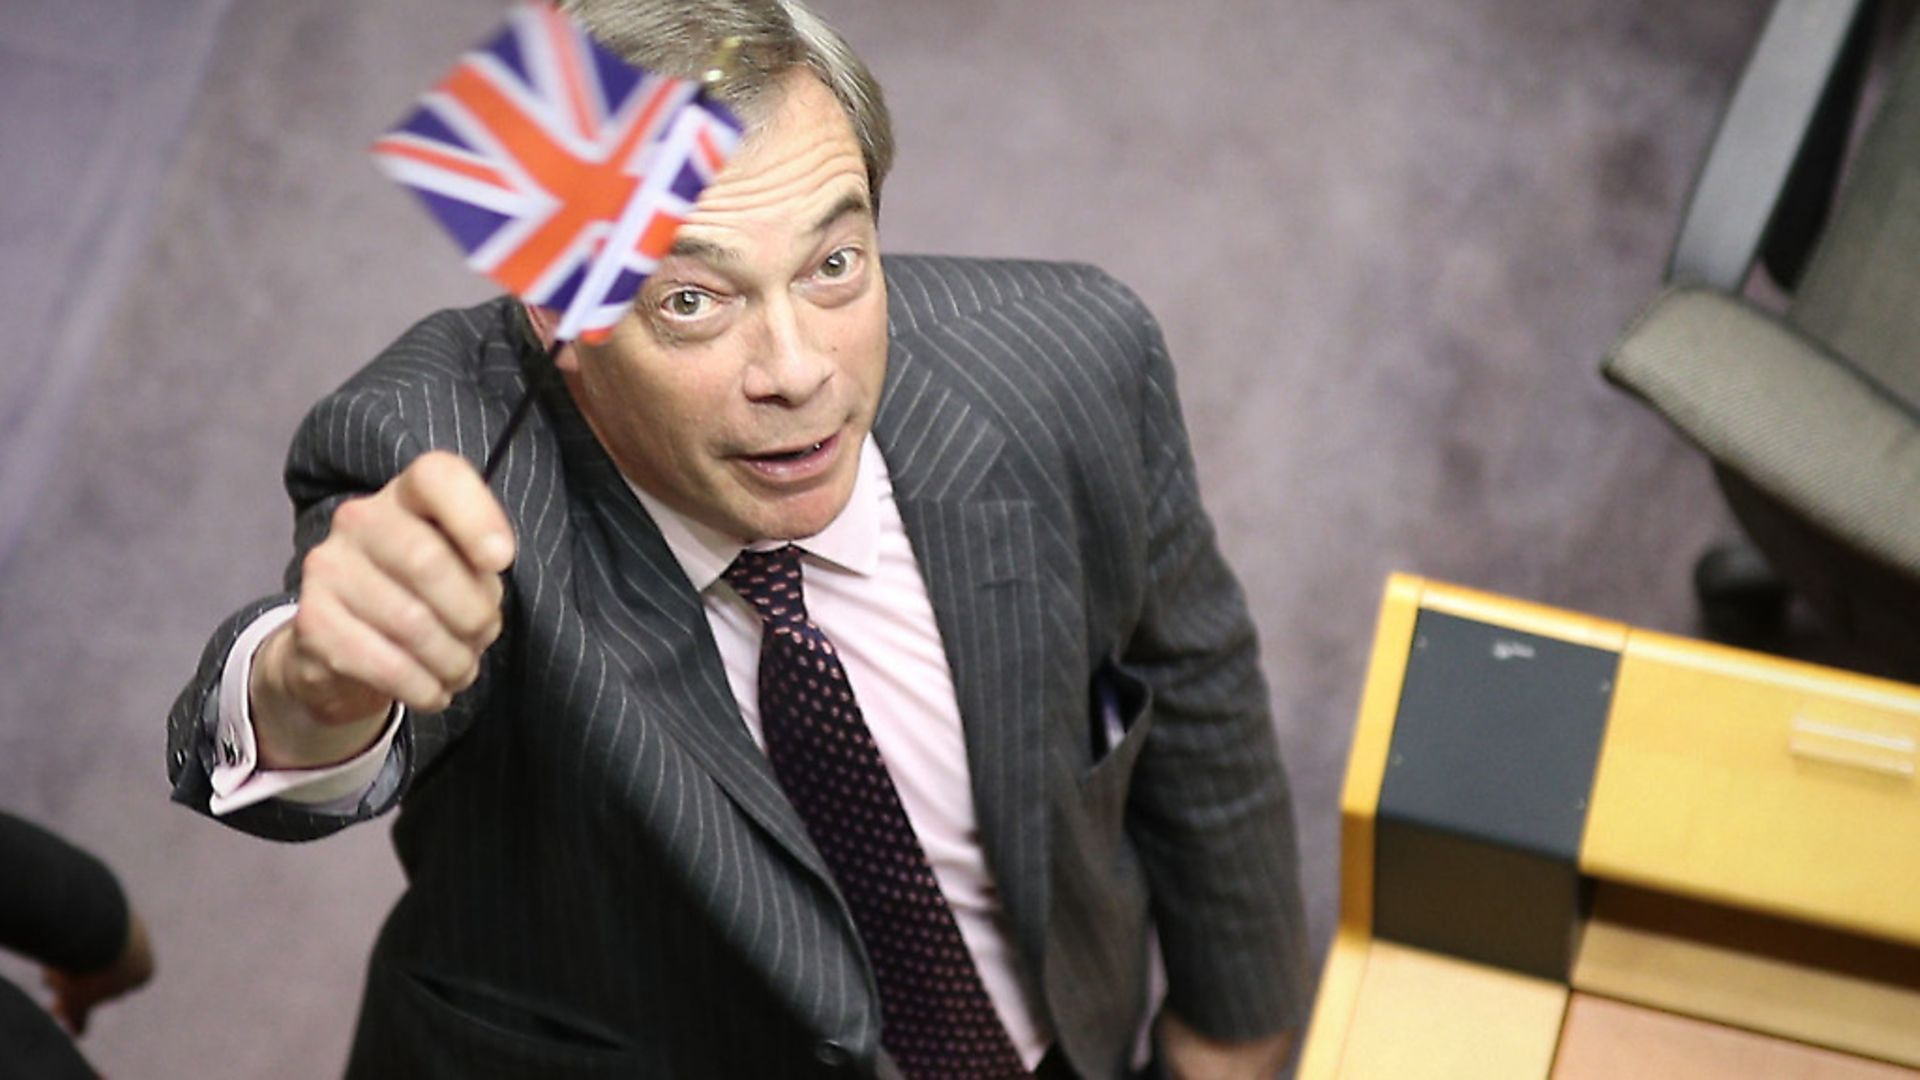 Nigel Farage in the parliament chamber at the European Parliament in Brussels. Photo: Yui Mok/PA Wire. - Credit: PA